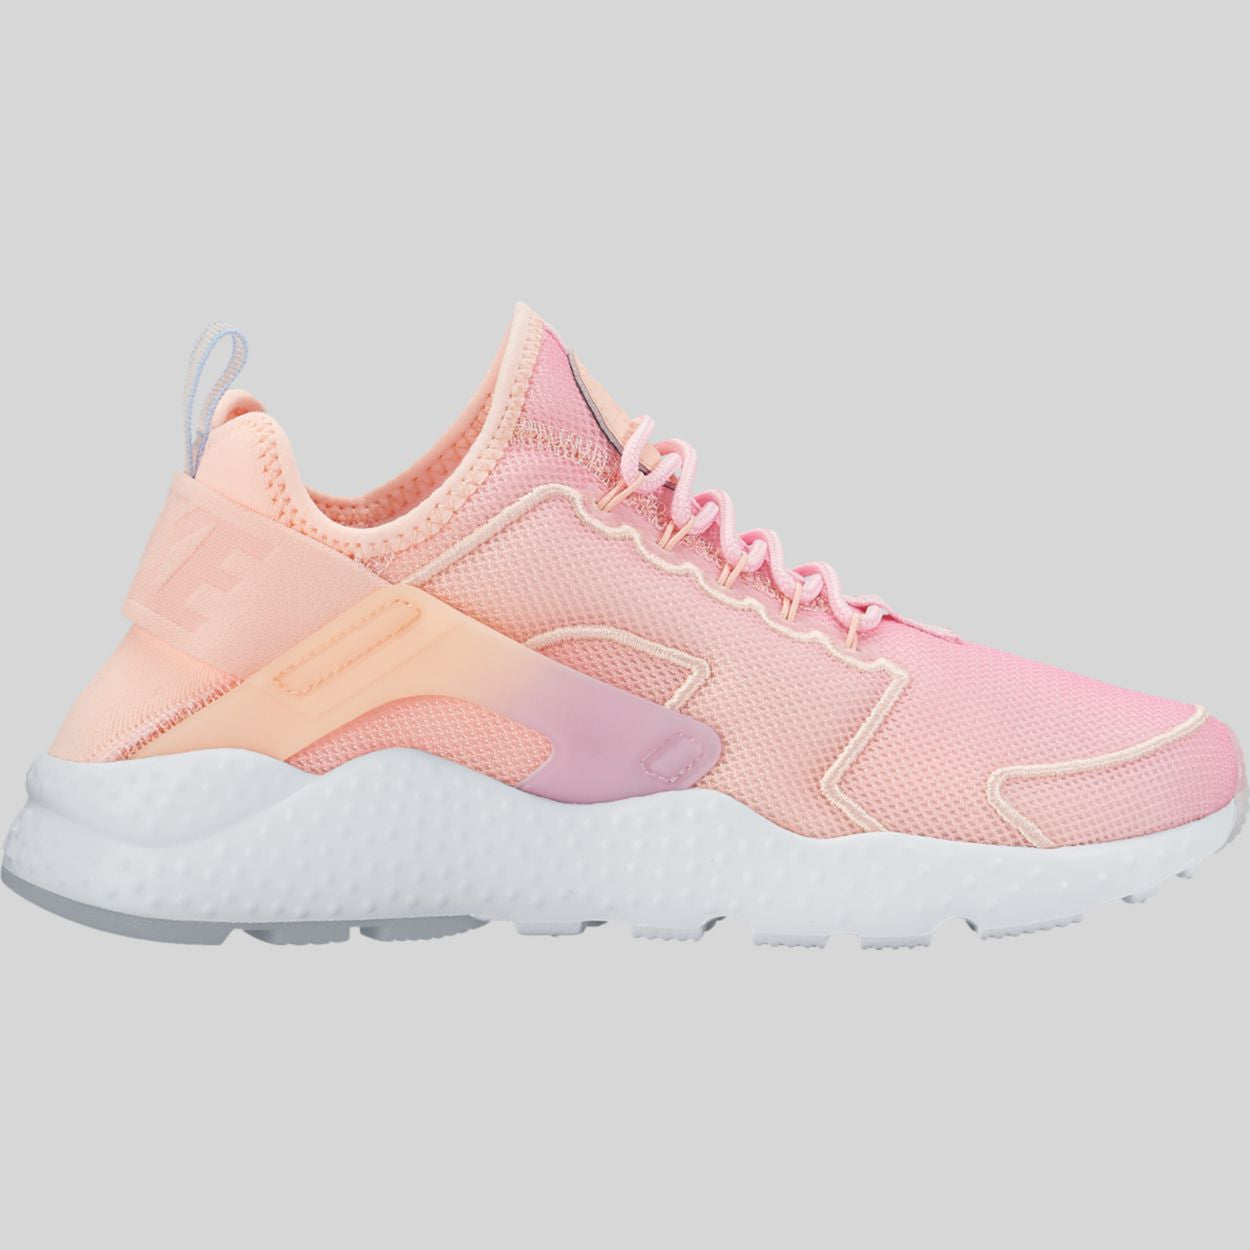 0ea42bcee861 ... order nike wmns air huarache run ultra br orchid sunset glow white  833292 501 8880e e78a0